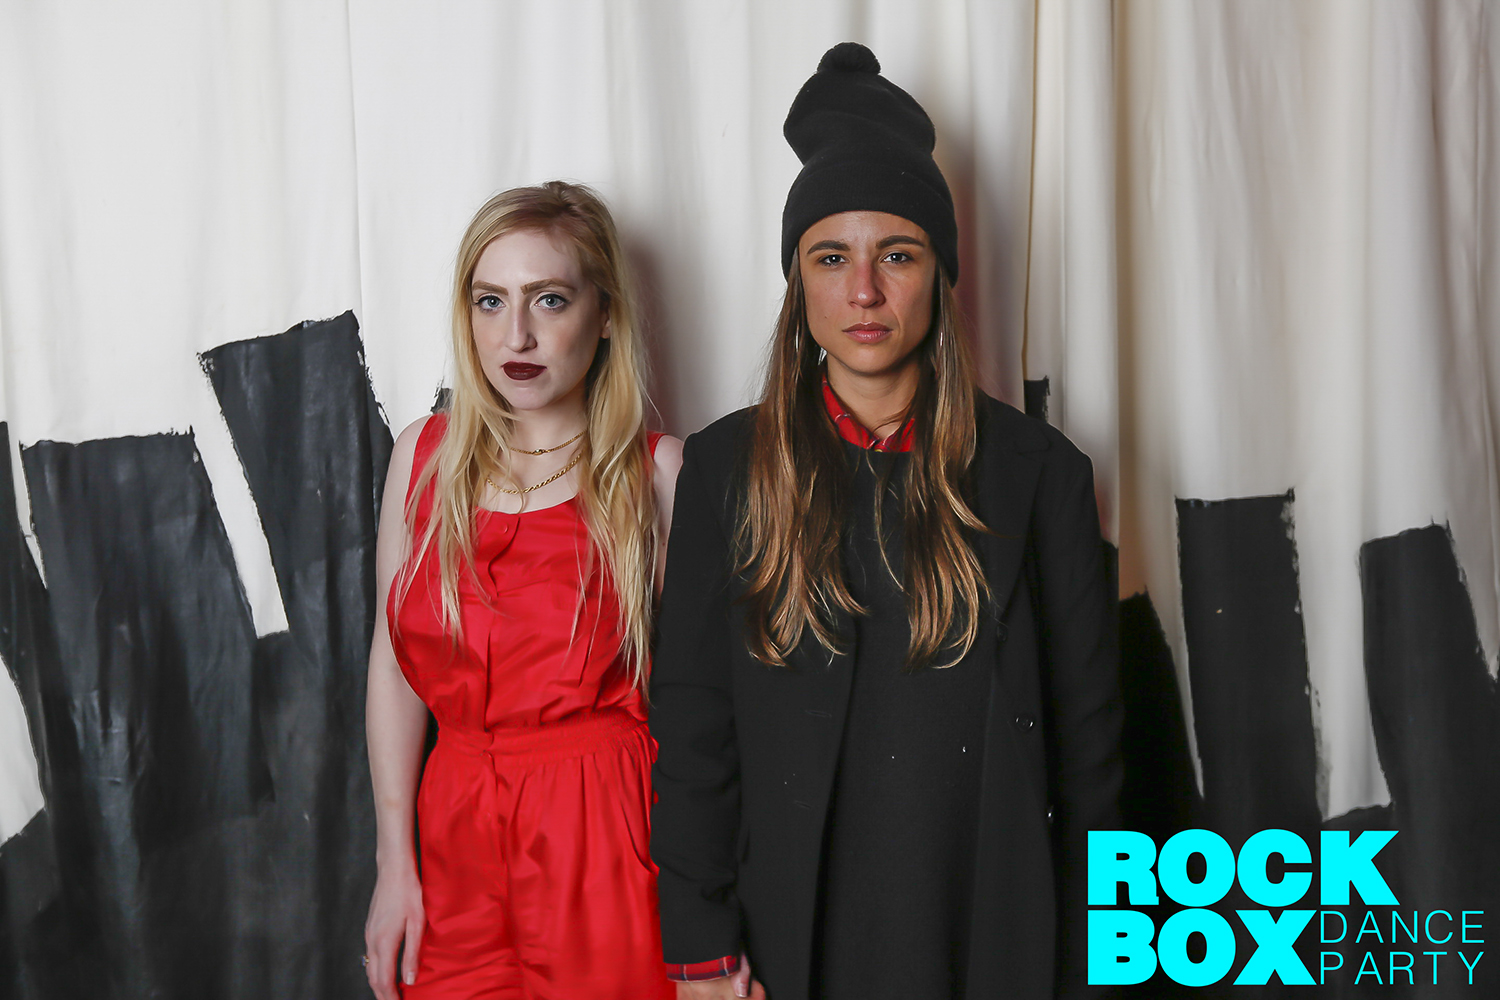 Rock box feb 2015-0133.jpg